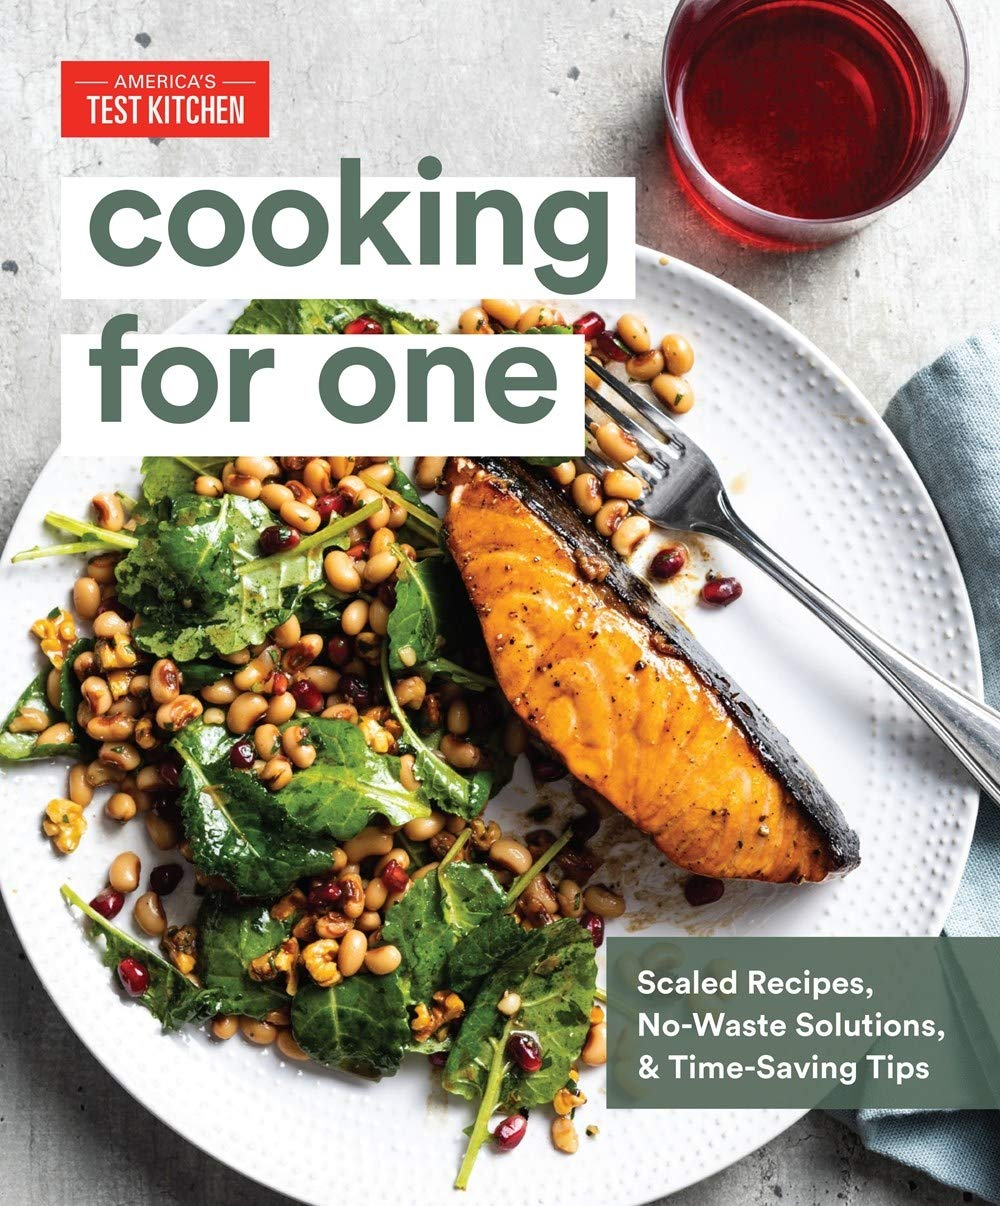 Image OfCooking For One: Scaled Recipes, No-Waste Solutions, And Time-Saving Tips